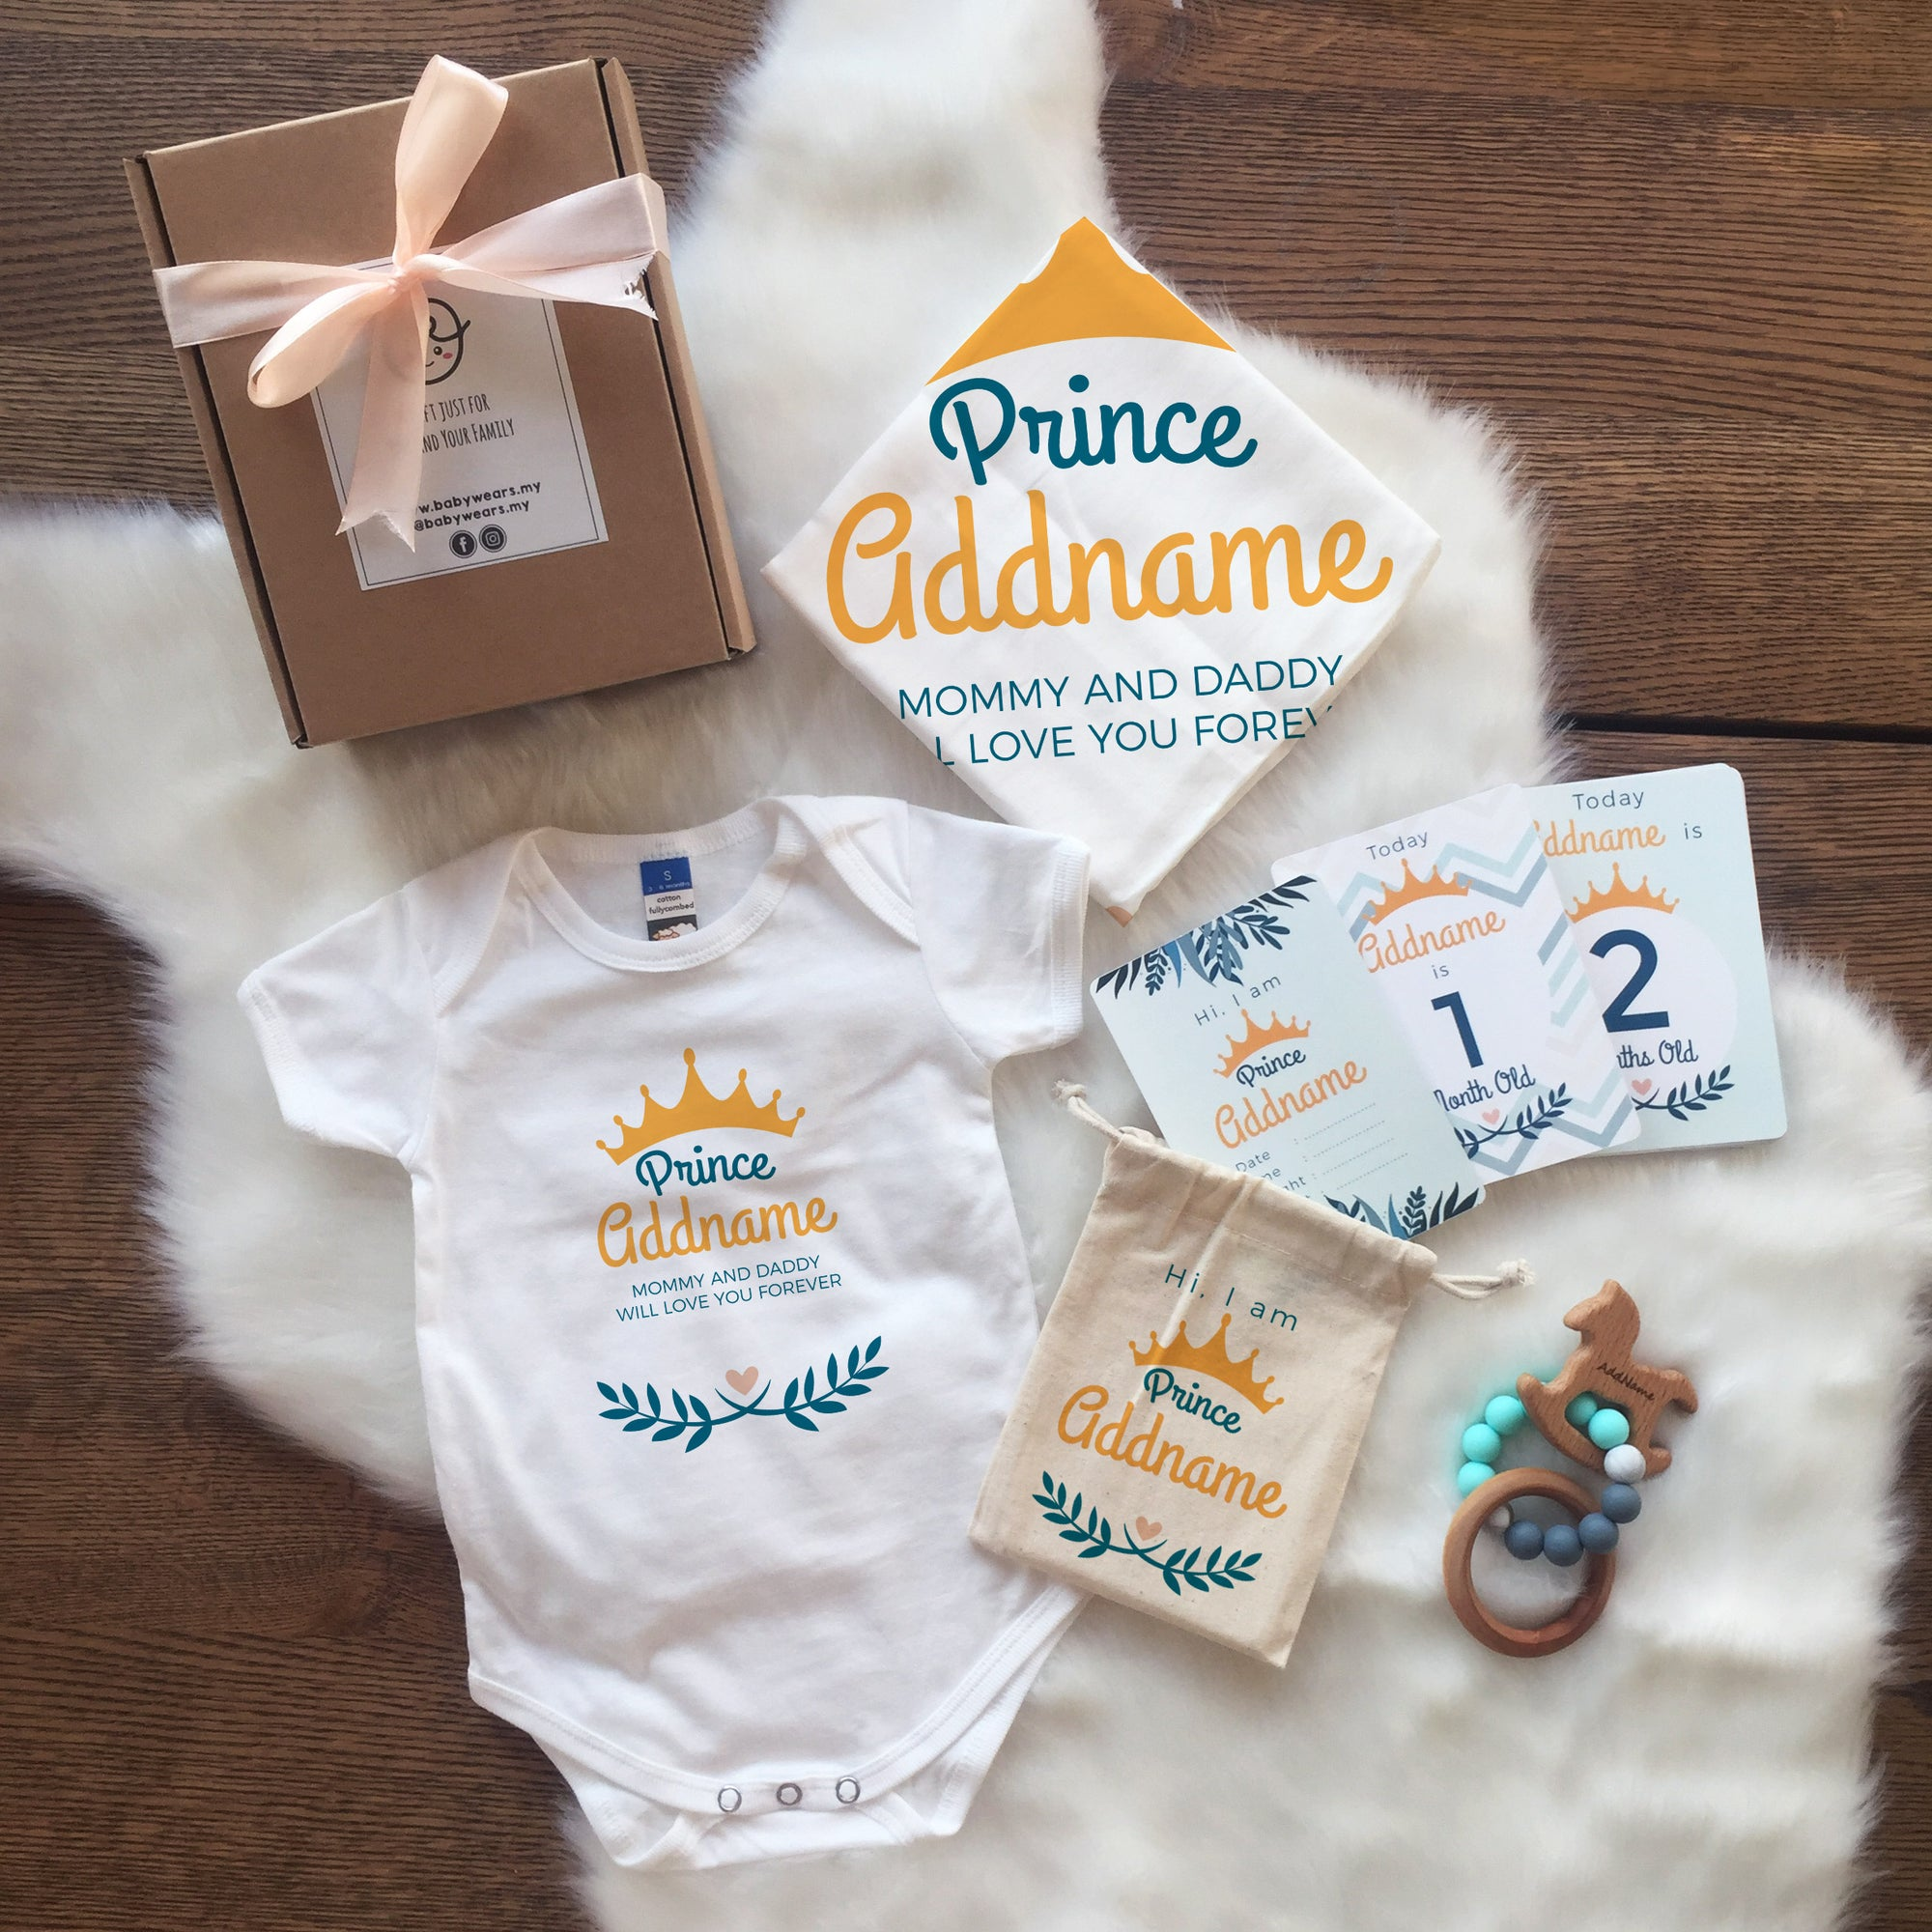 Prince with Crown and Leaves Newborn Gift Set with Personalised Milestone Cards and Baby Sensory Teether (UNDER RM 160)